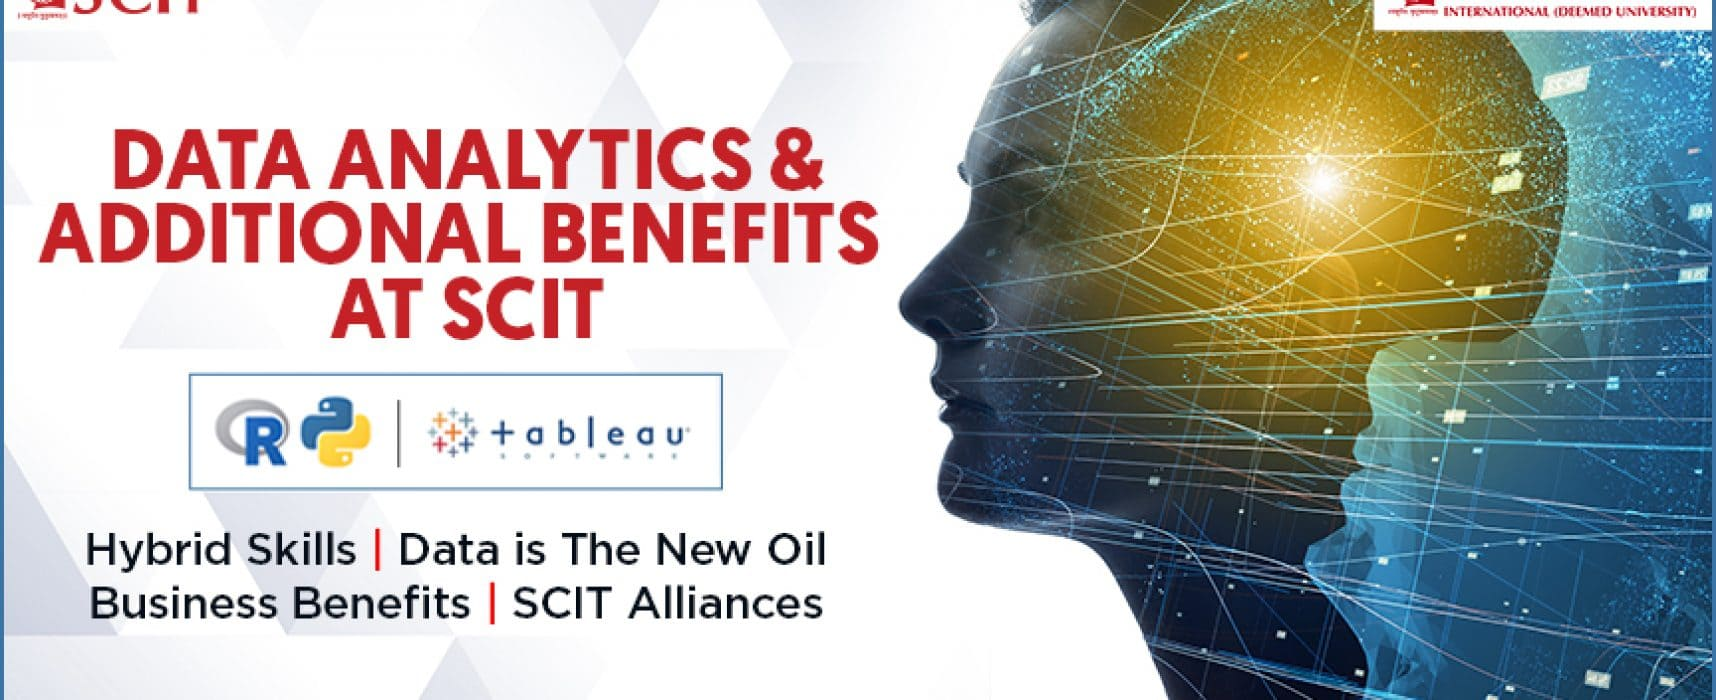 An insight into Data Analytics & additional benefits at SCIT.